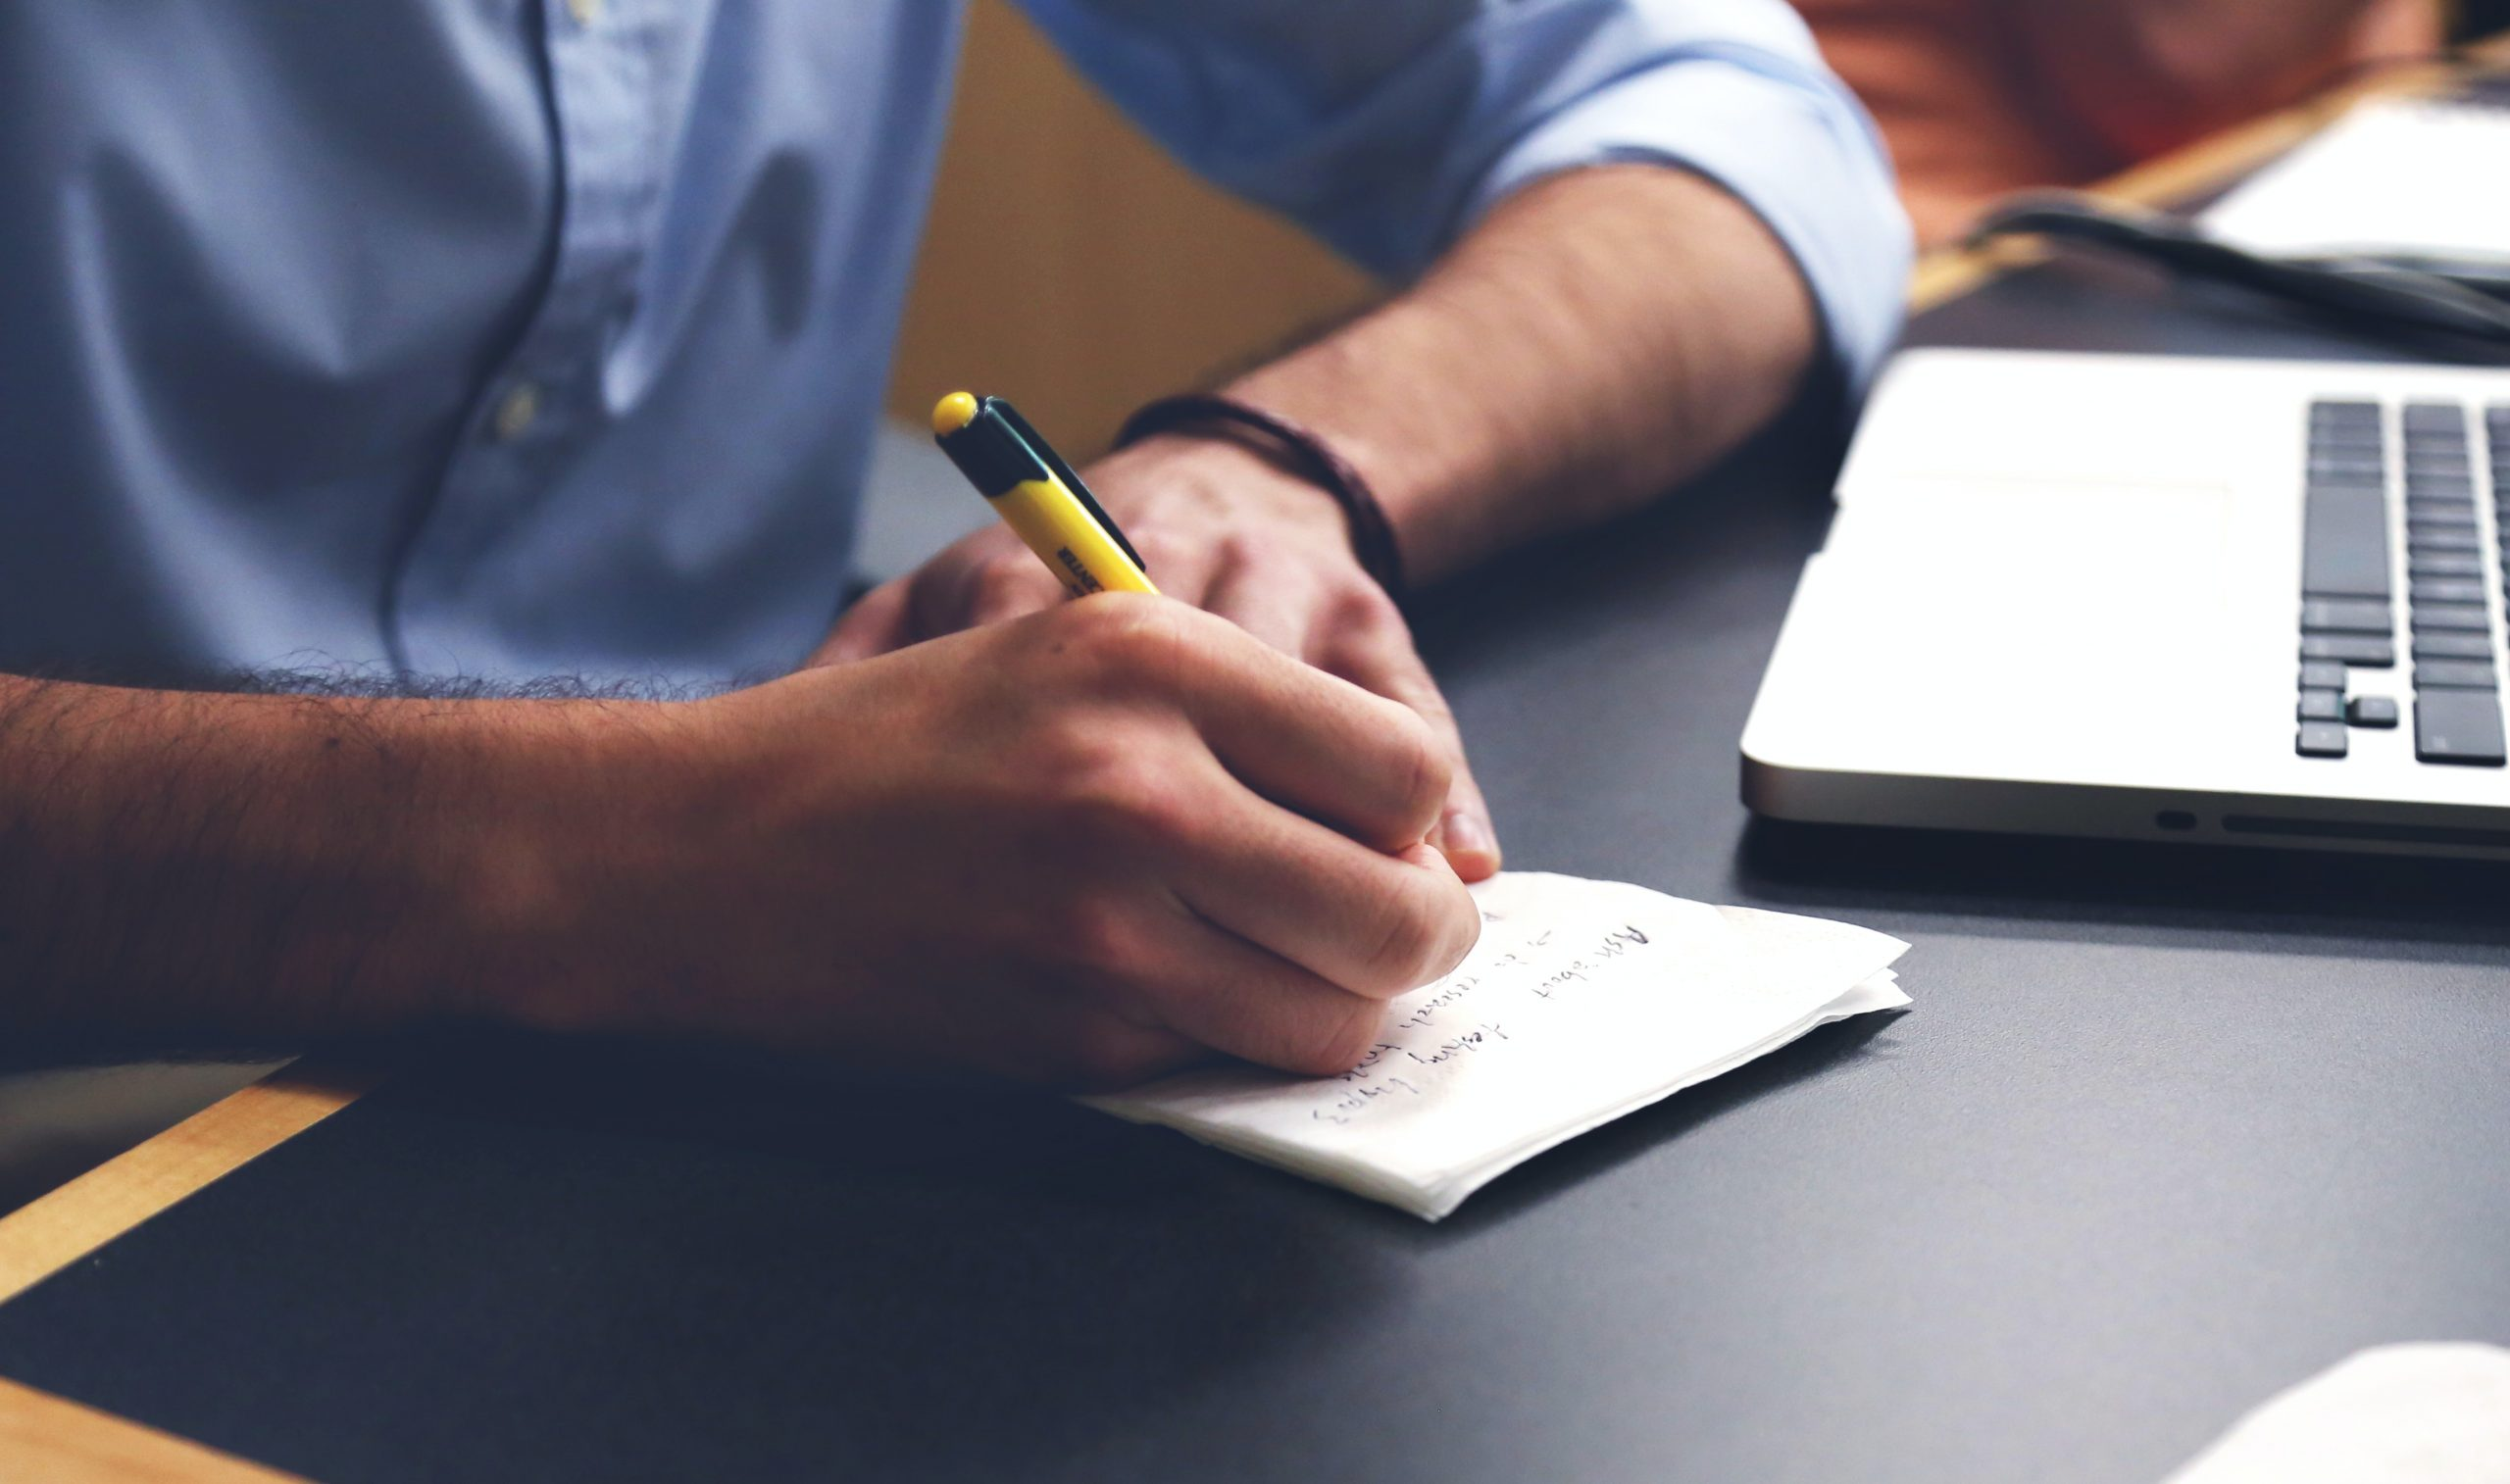 5 Common mistakes writers should avoid